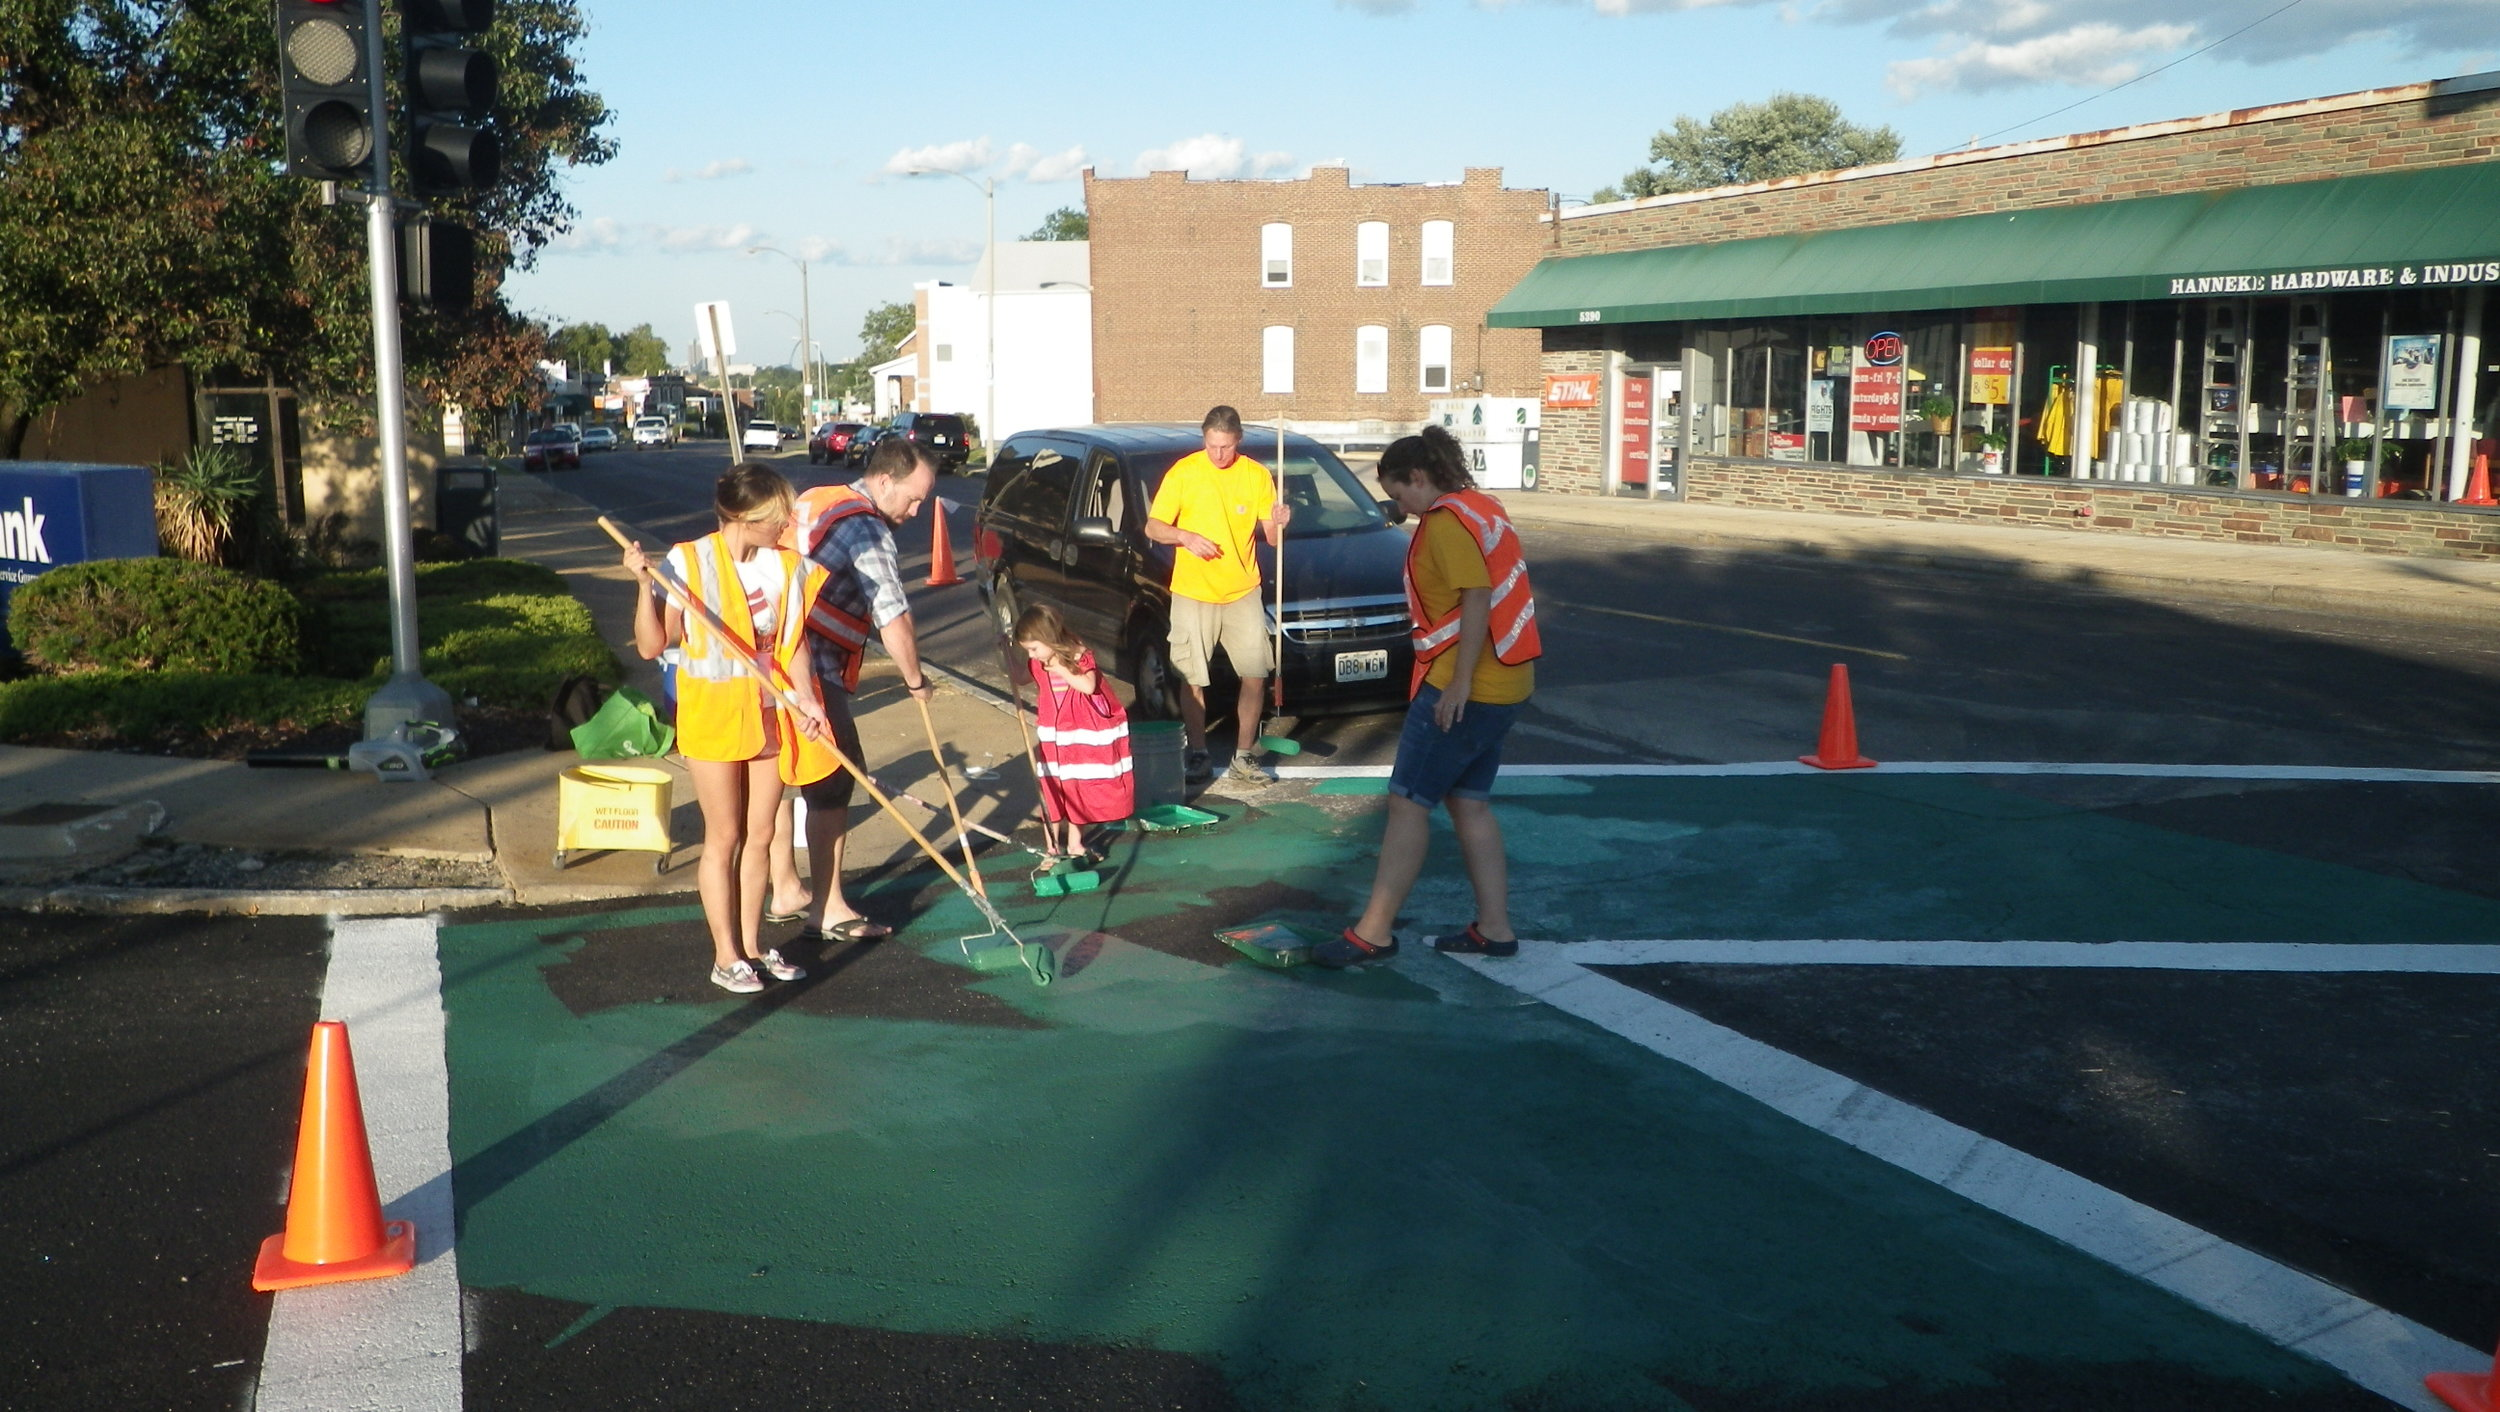 Volunteers paint the crosswalks at Macklind and Southwest Ave in Southwest Garden neighborhood as part of the neighborhood beautification projects.